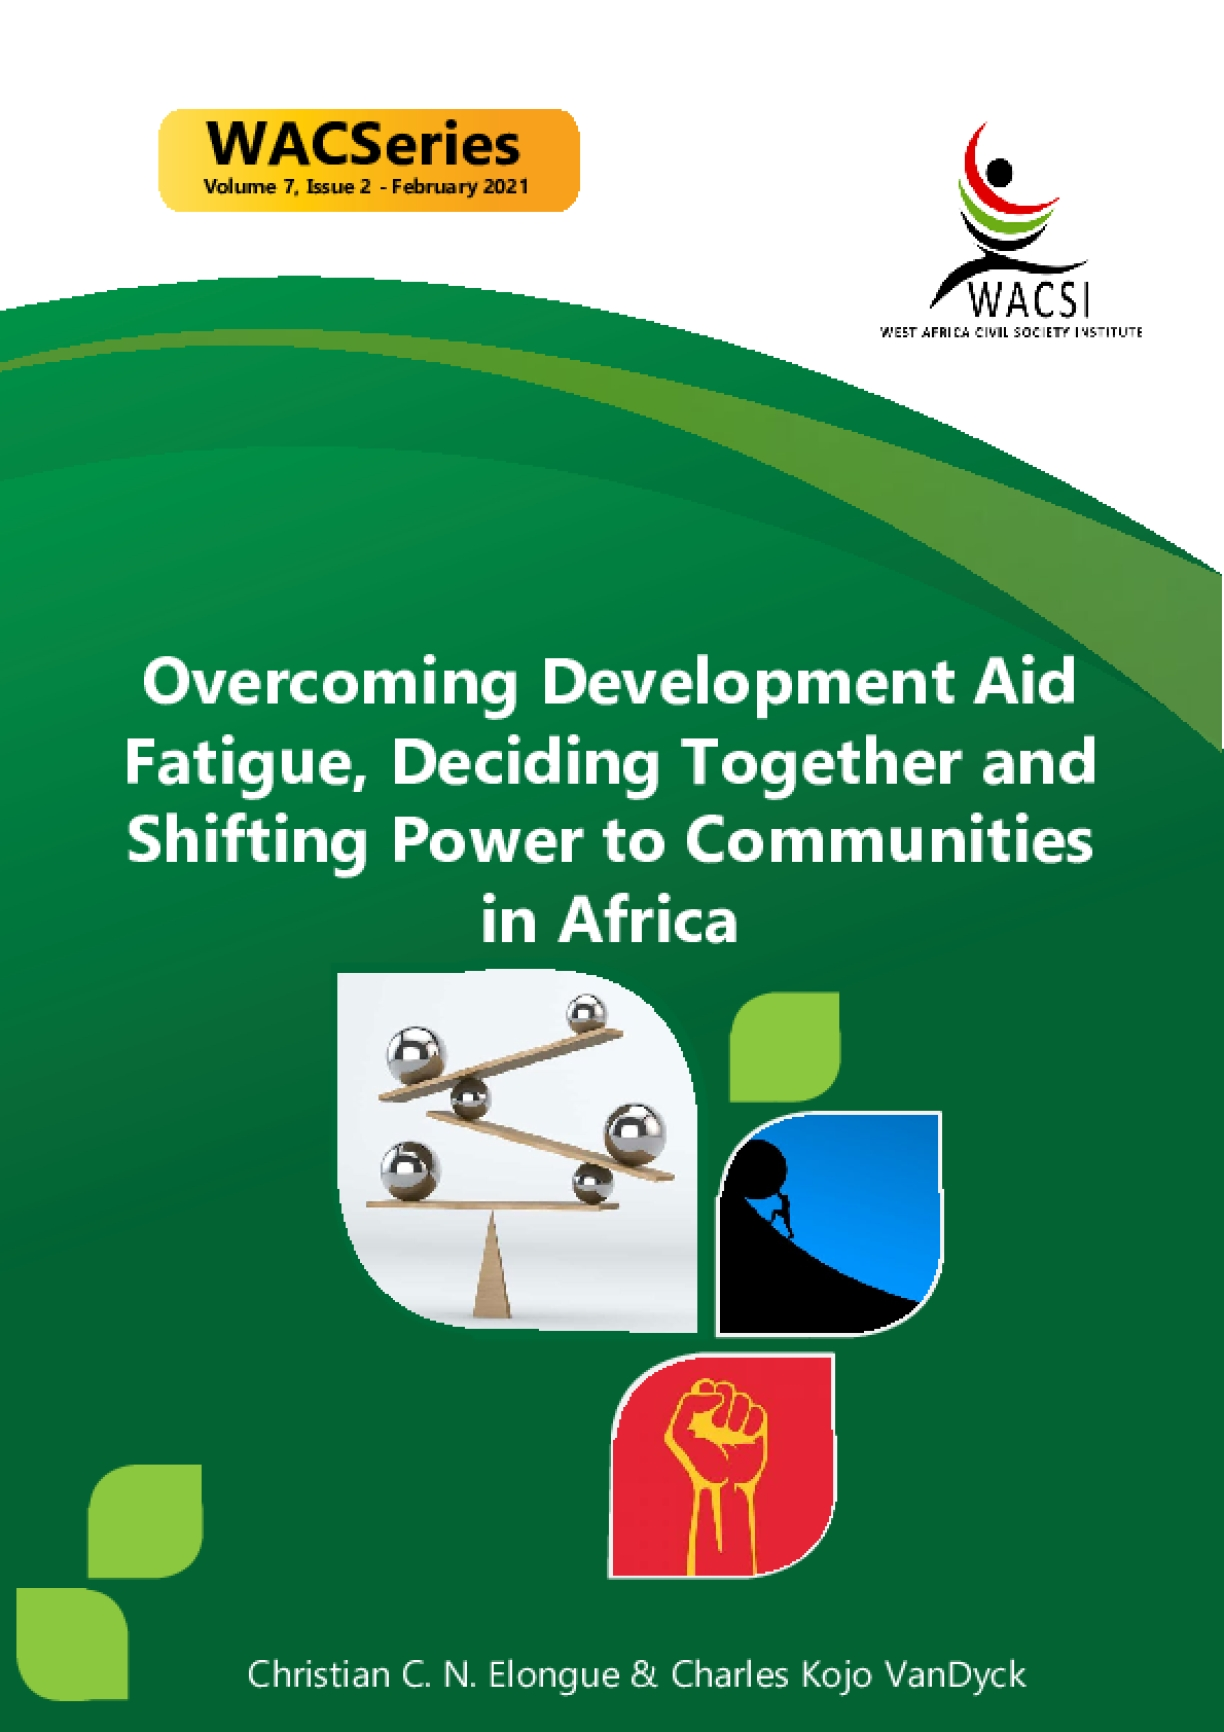 Overcoming Development Aid Fatigue, Deciding Together and Shifting Power to Communities in Africa